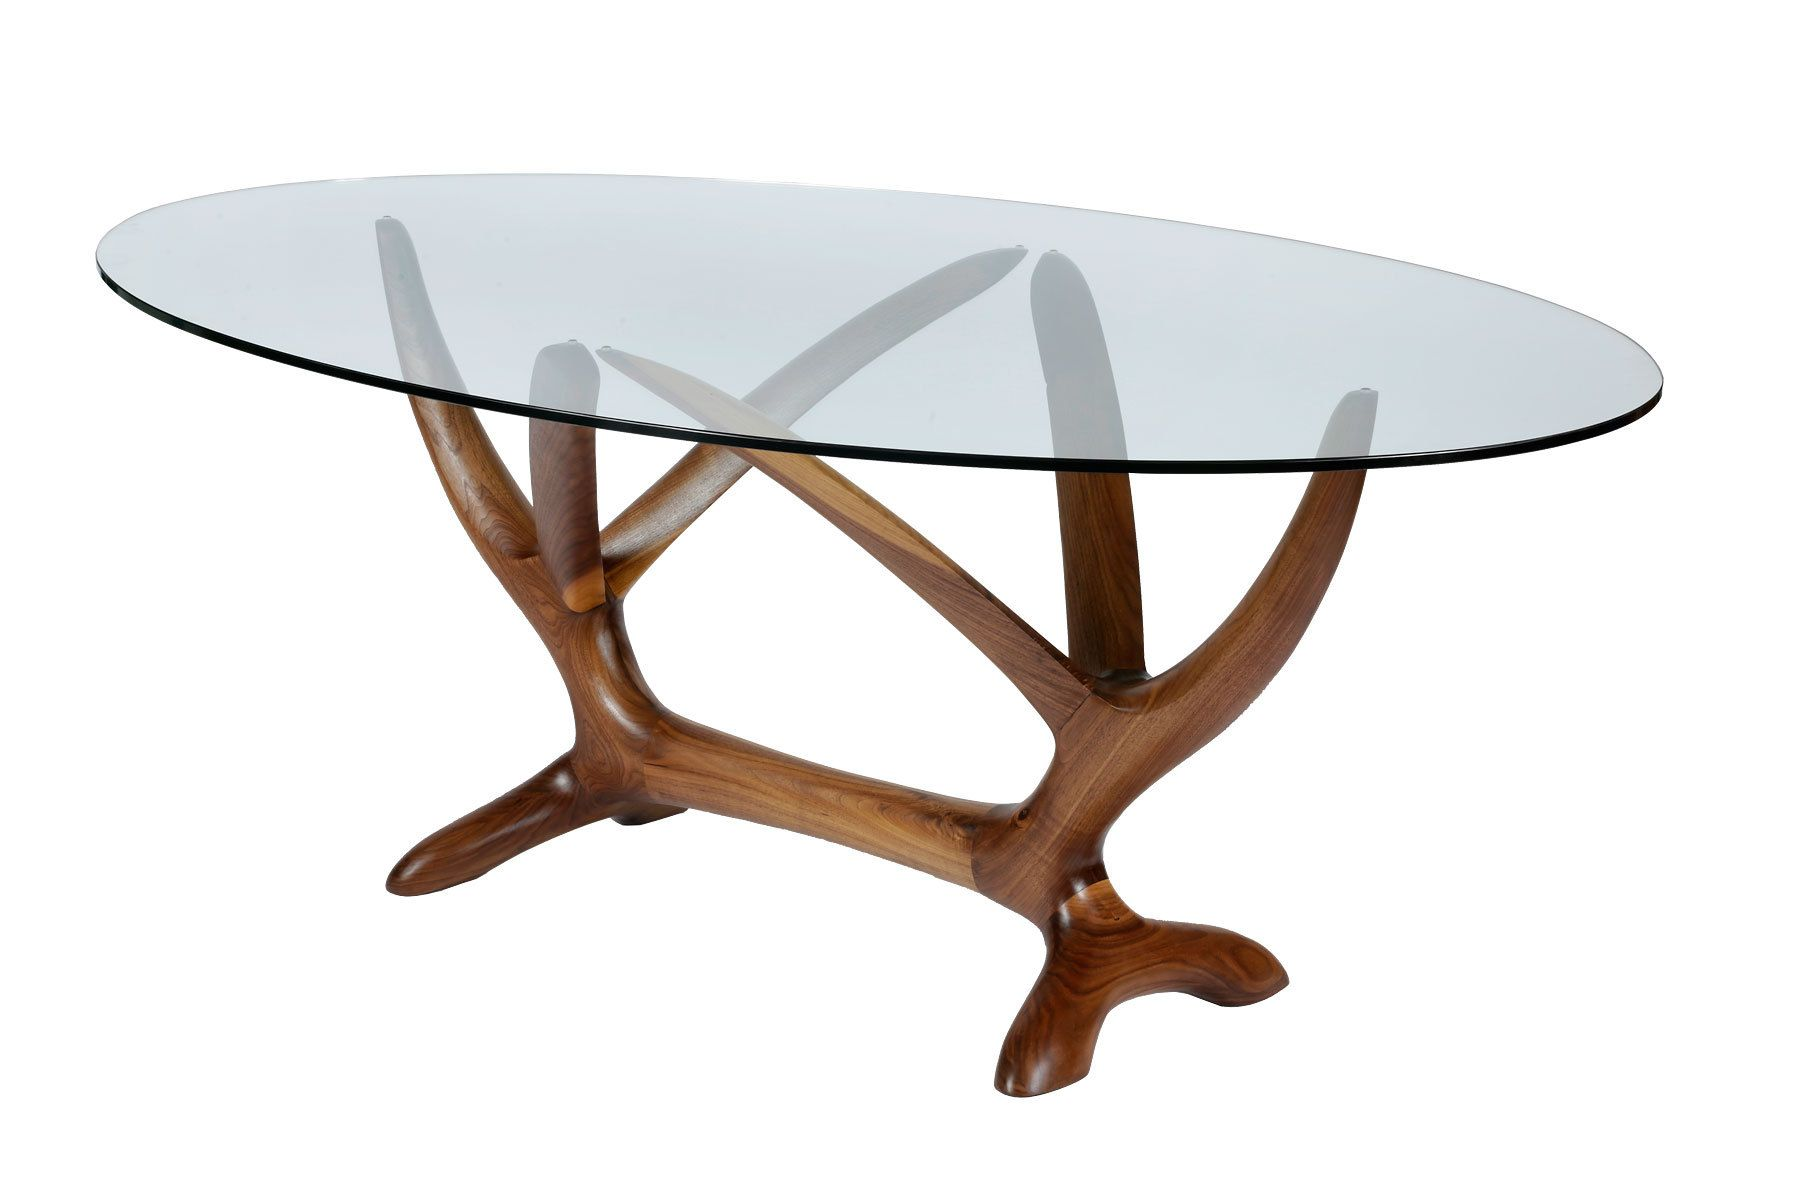 Wisteria dining table